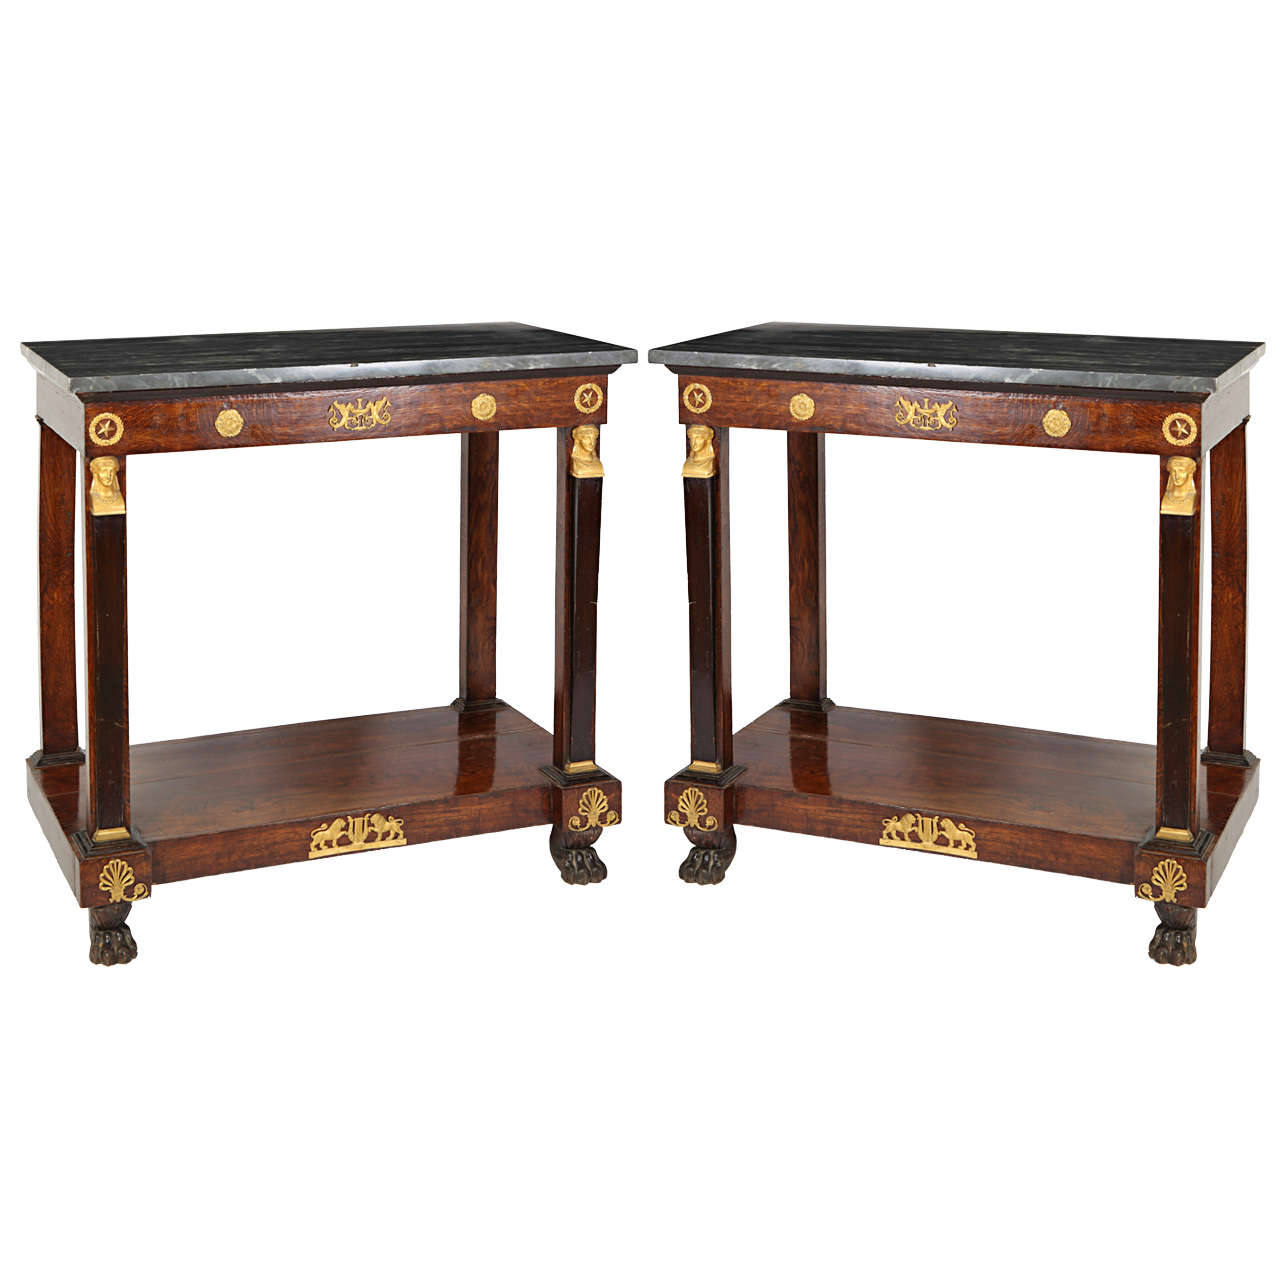 Pair of French Empire Consoles Tables